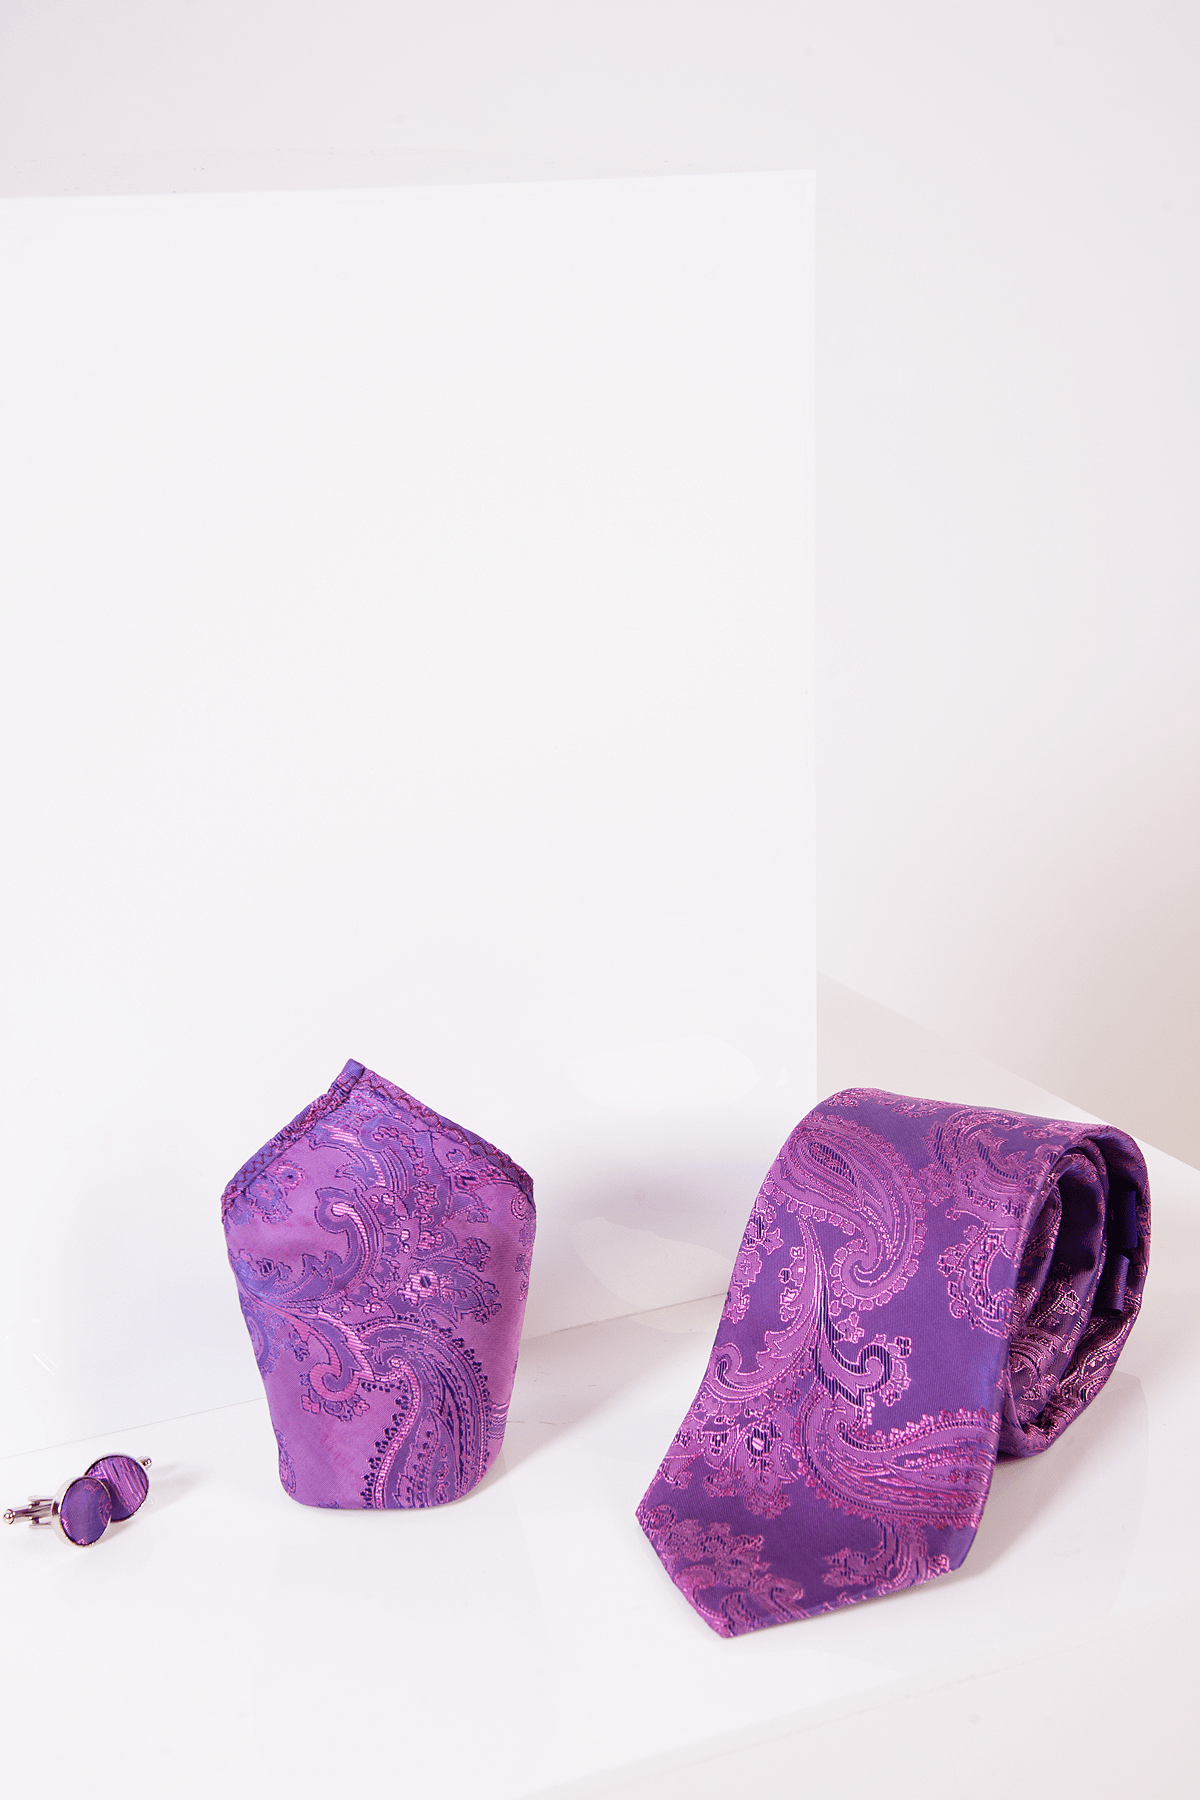 PAISLEY - Purple Paisley Tie, Cufflink and Pocket Square Set